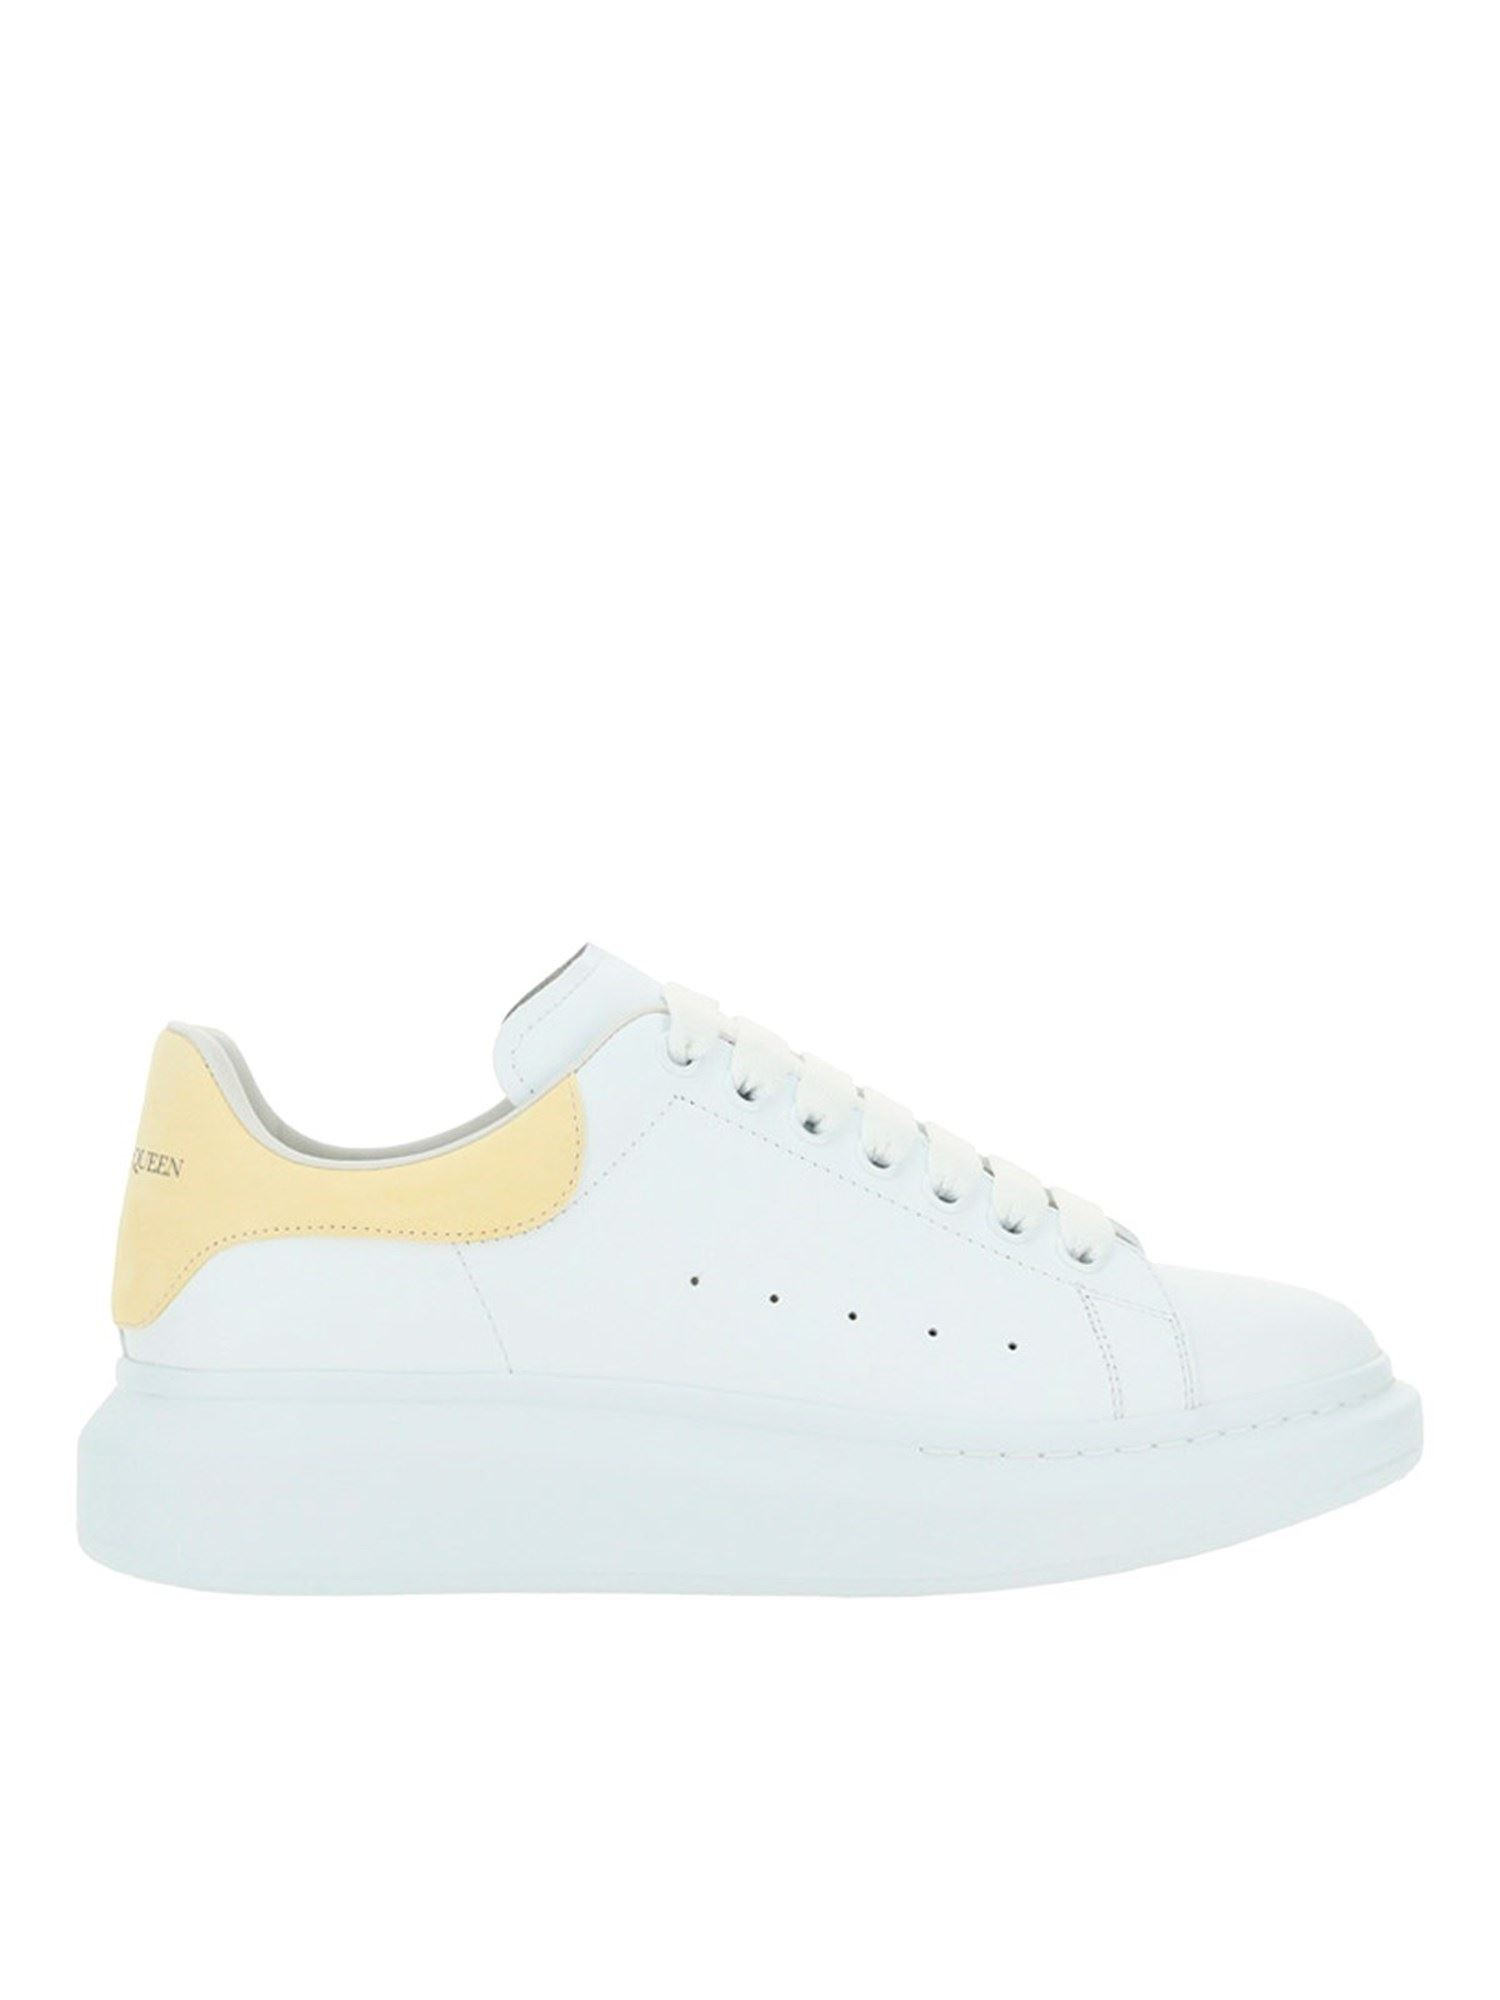 Alexander Mcqueen Chunky Sneakers In White And Yellow In White/lemon